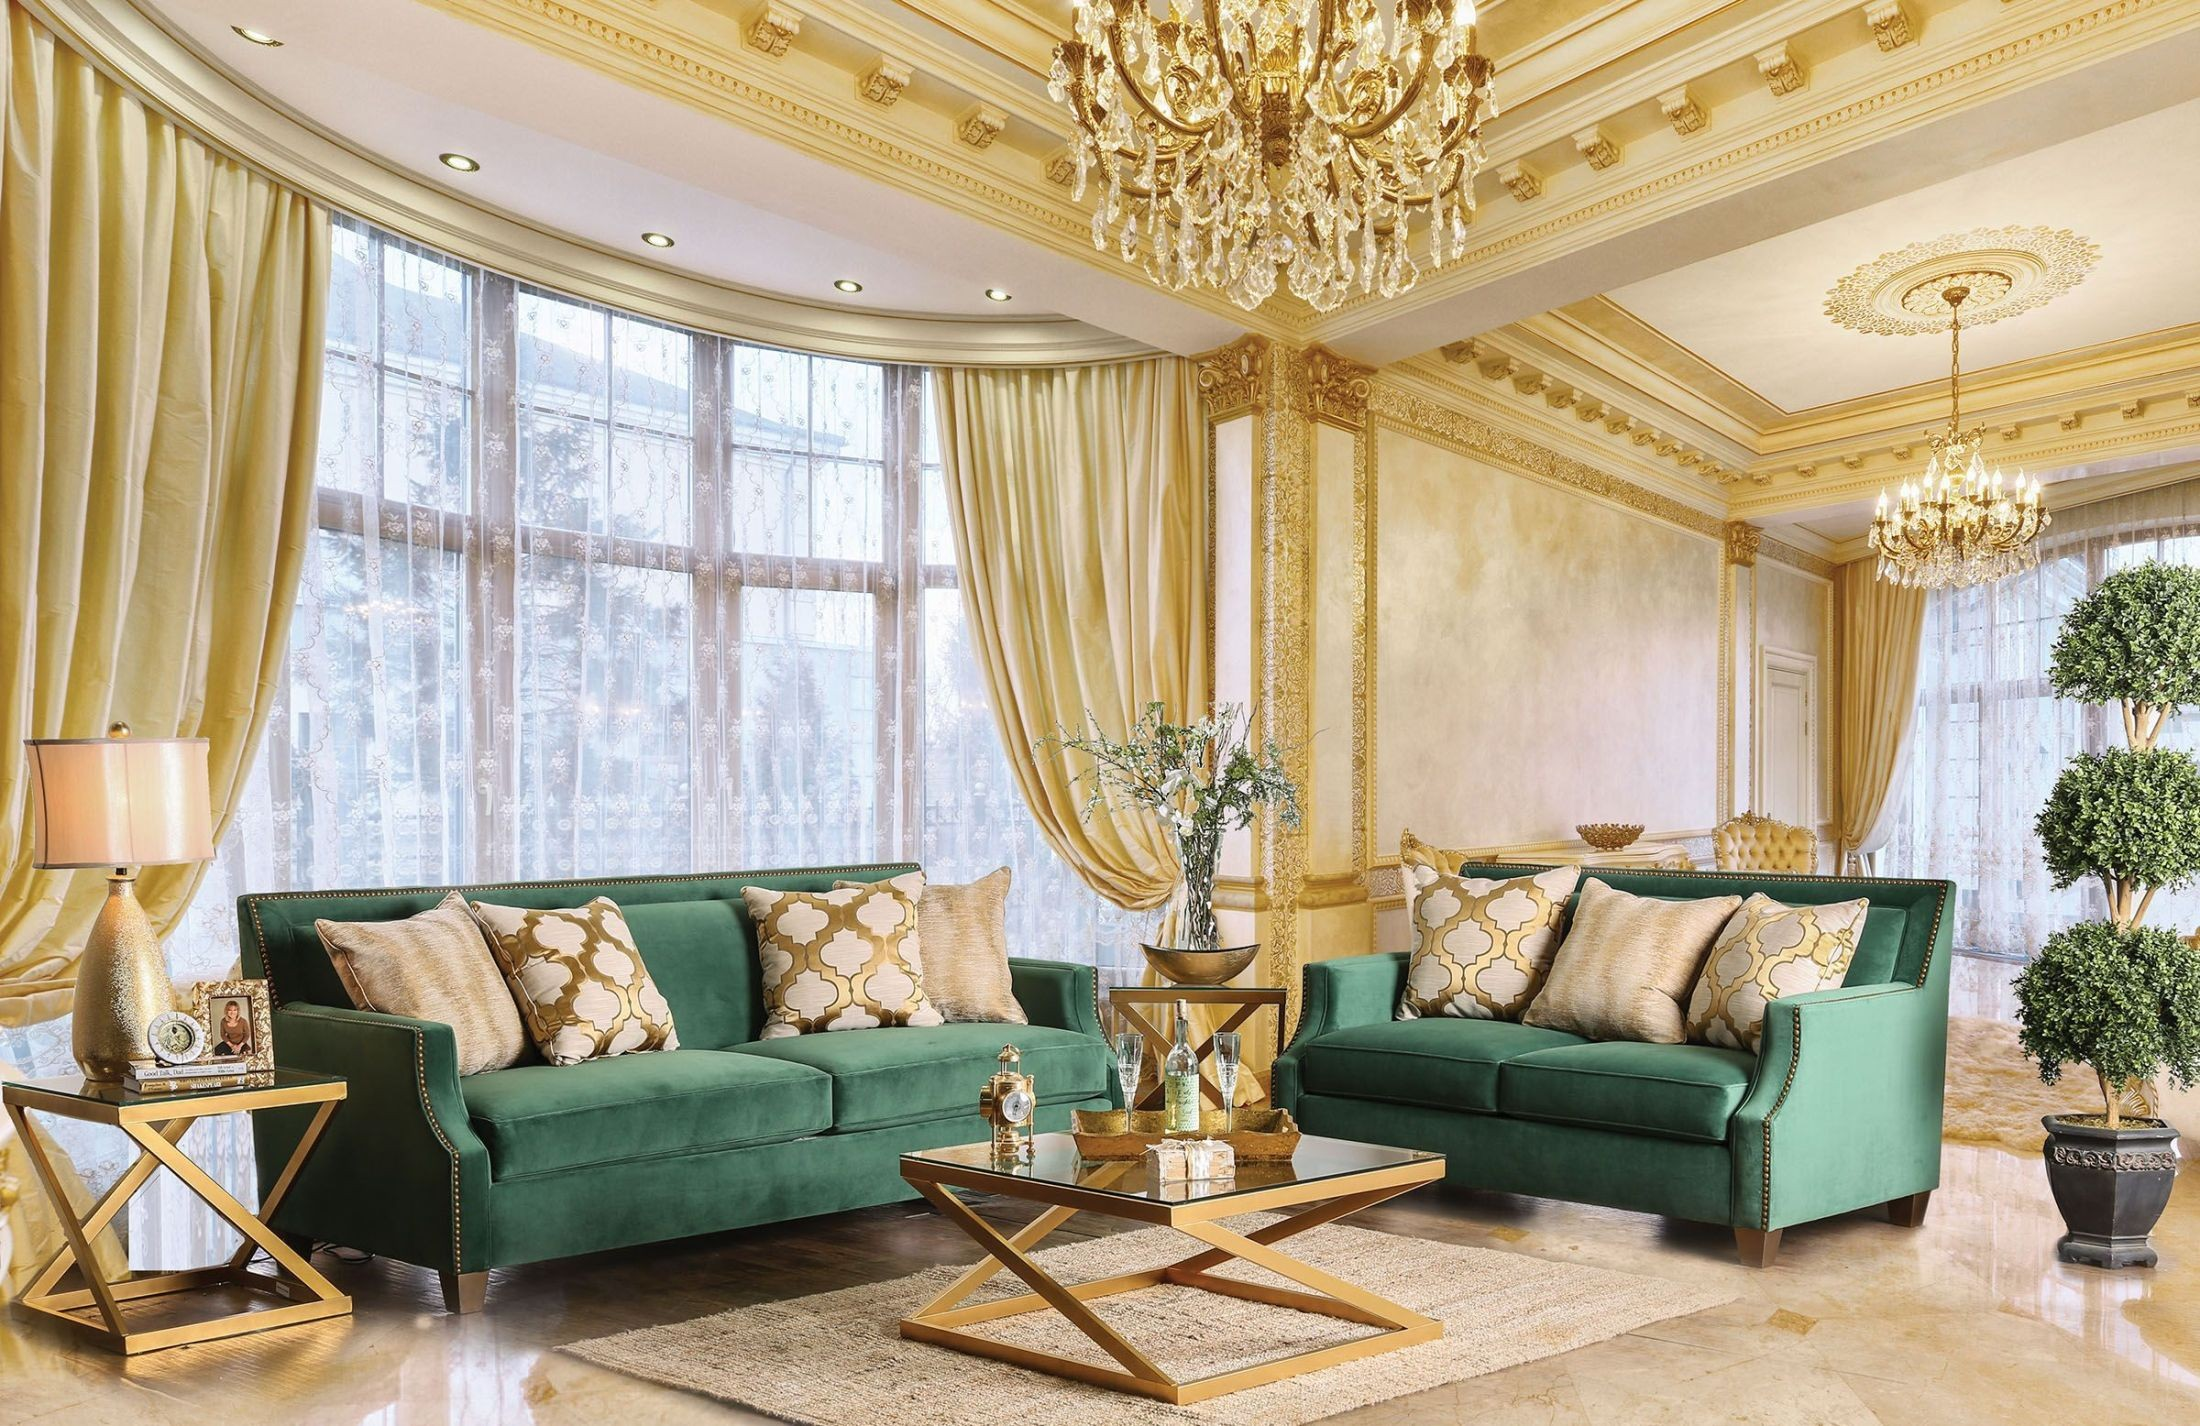 Verdante Emerald Green Living Room Set from Furniture of